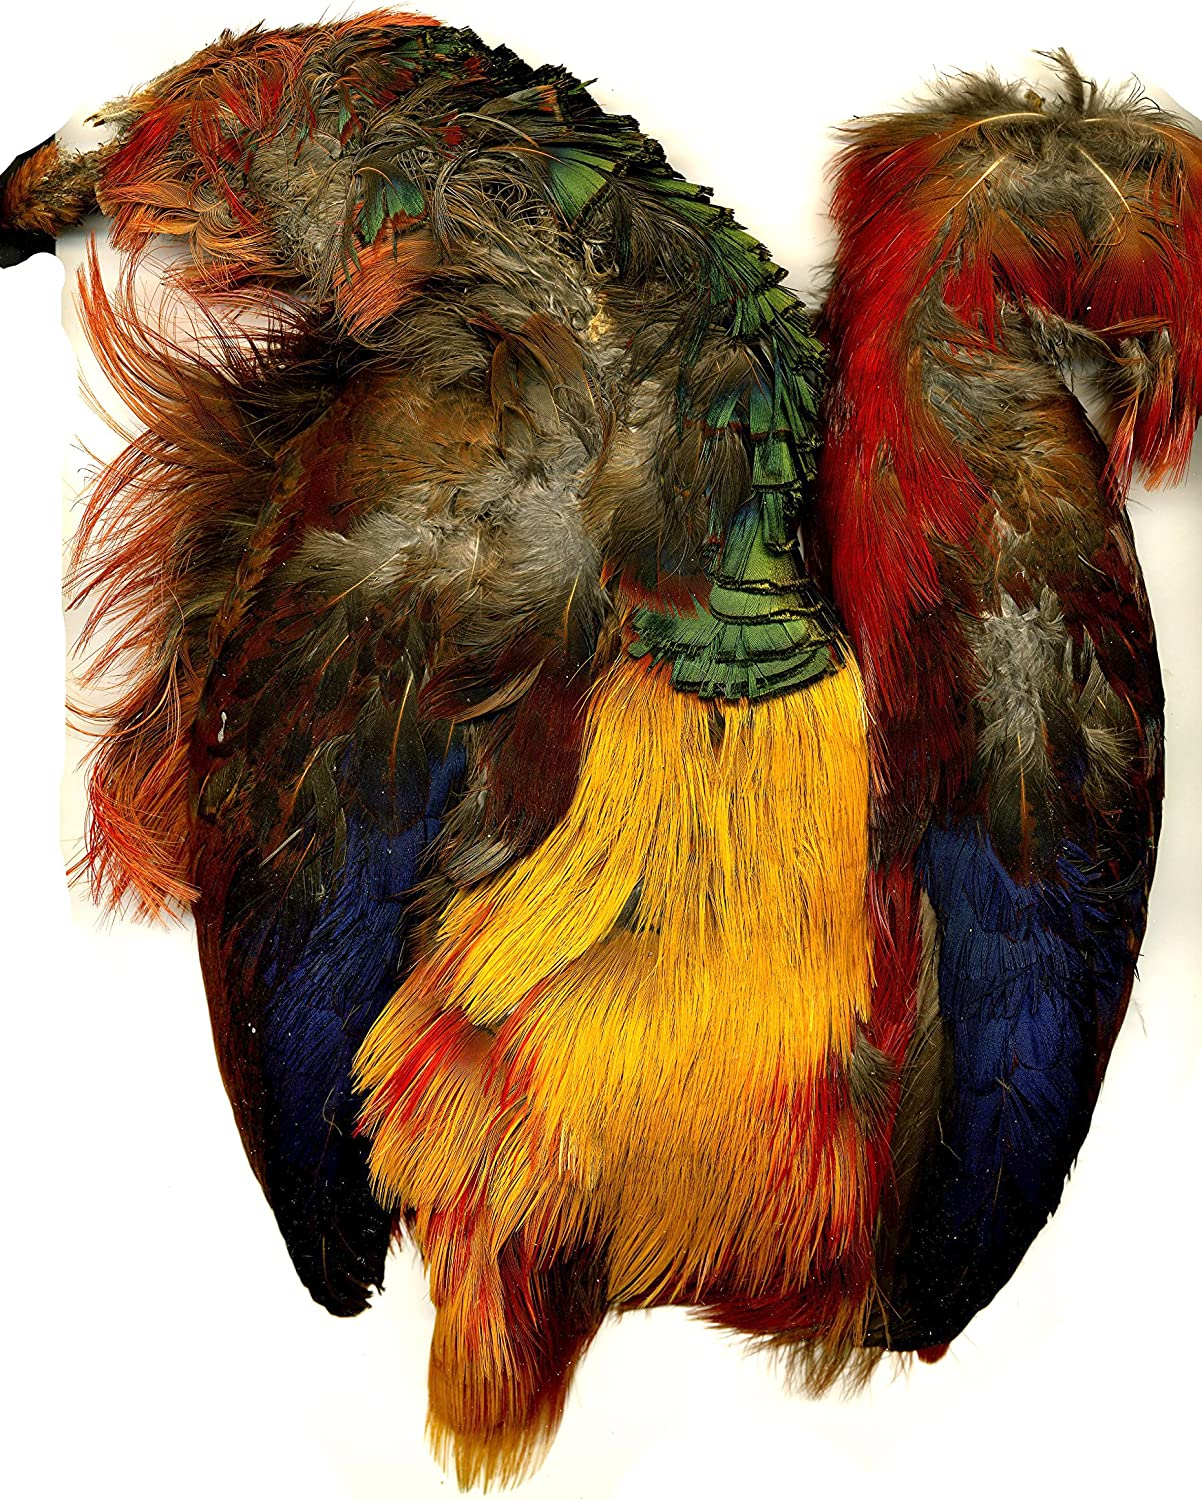 Fly Tying Feathers Crafting Golden Pheasant Body Skin Milliner,